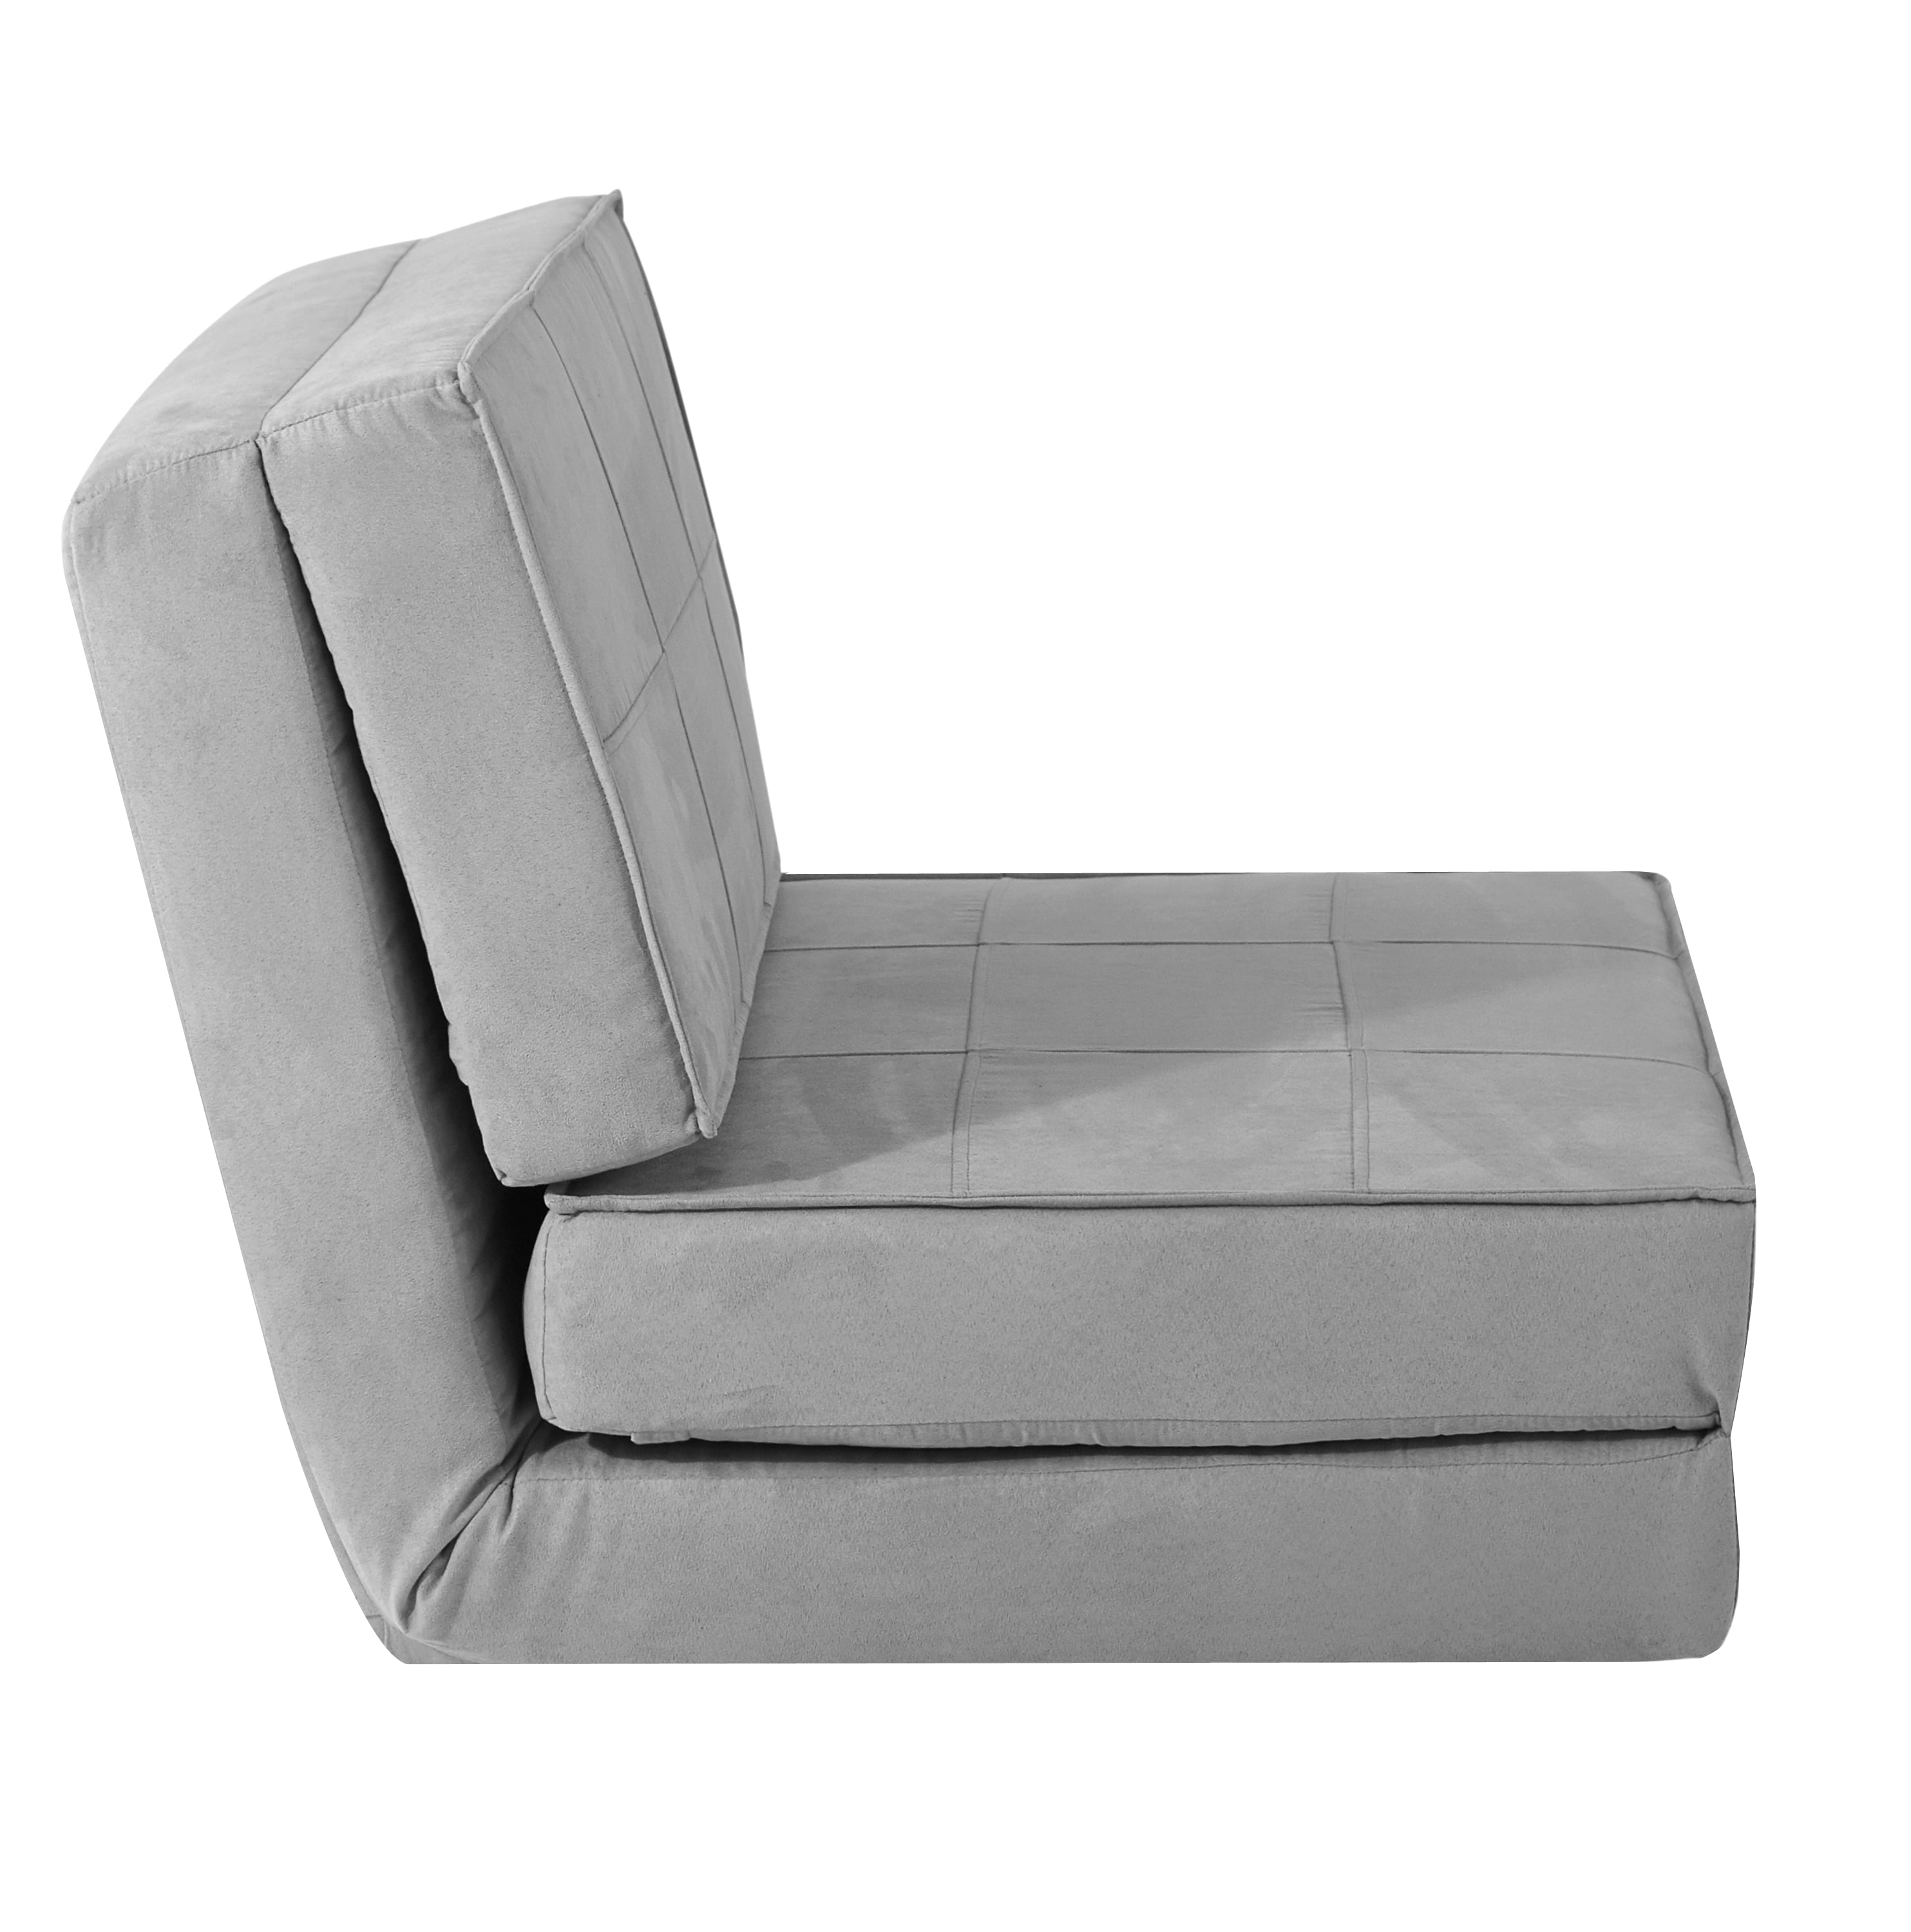 Your Zone Flip Chair Available in Multiple Colors Walmart